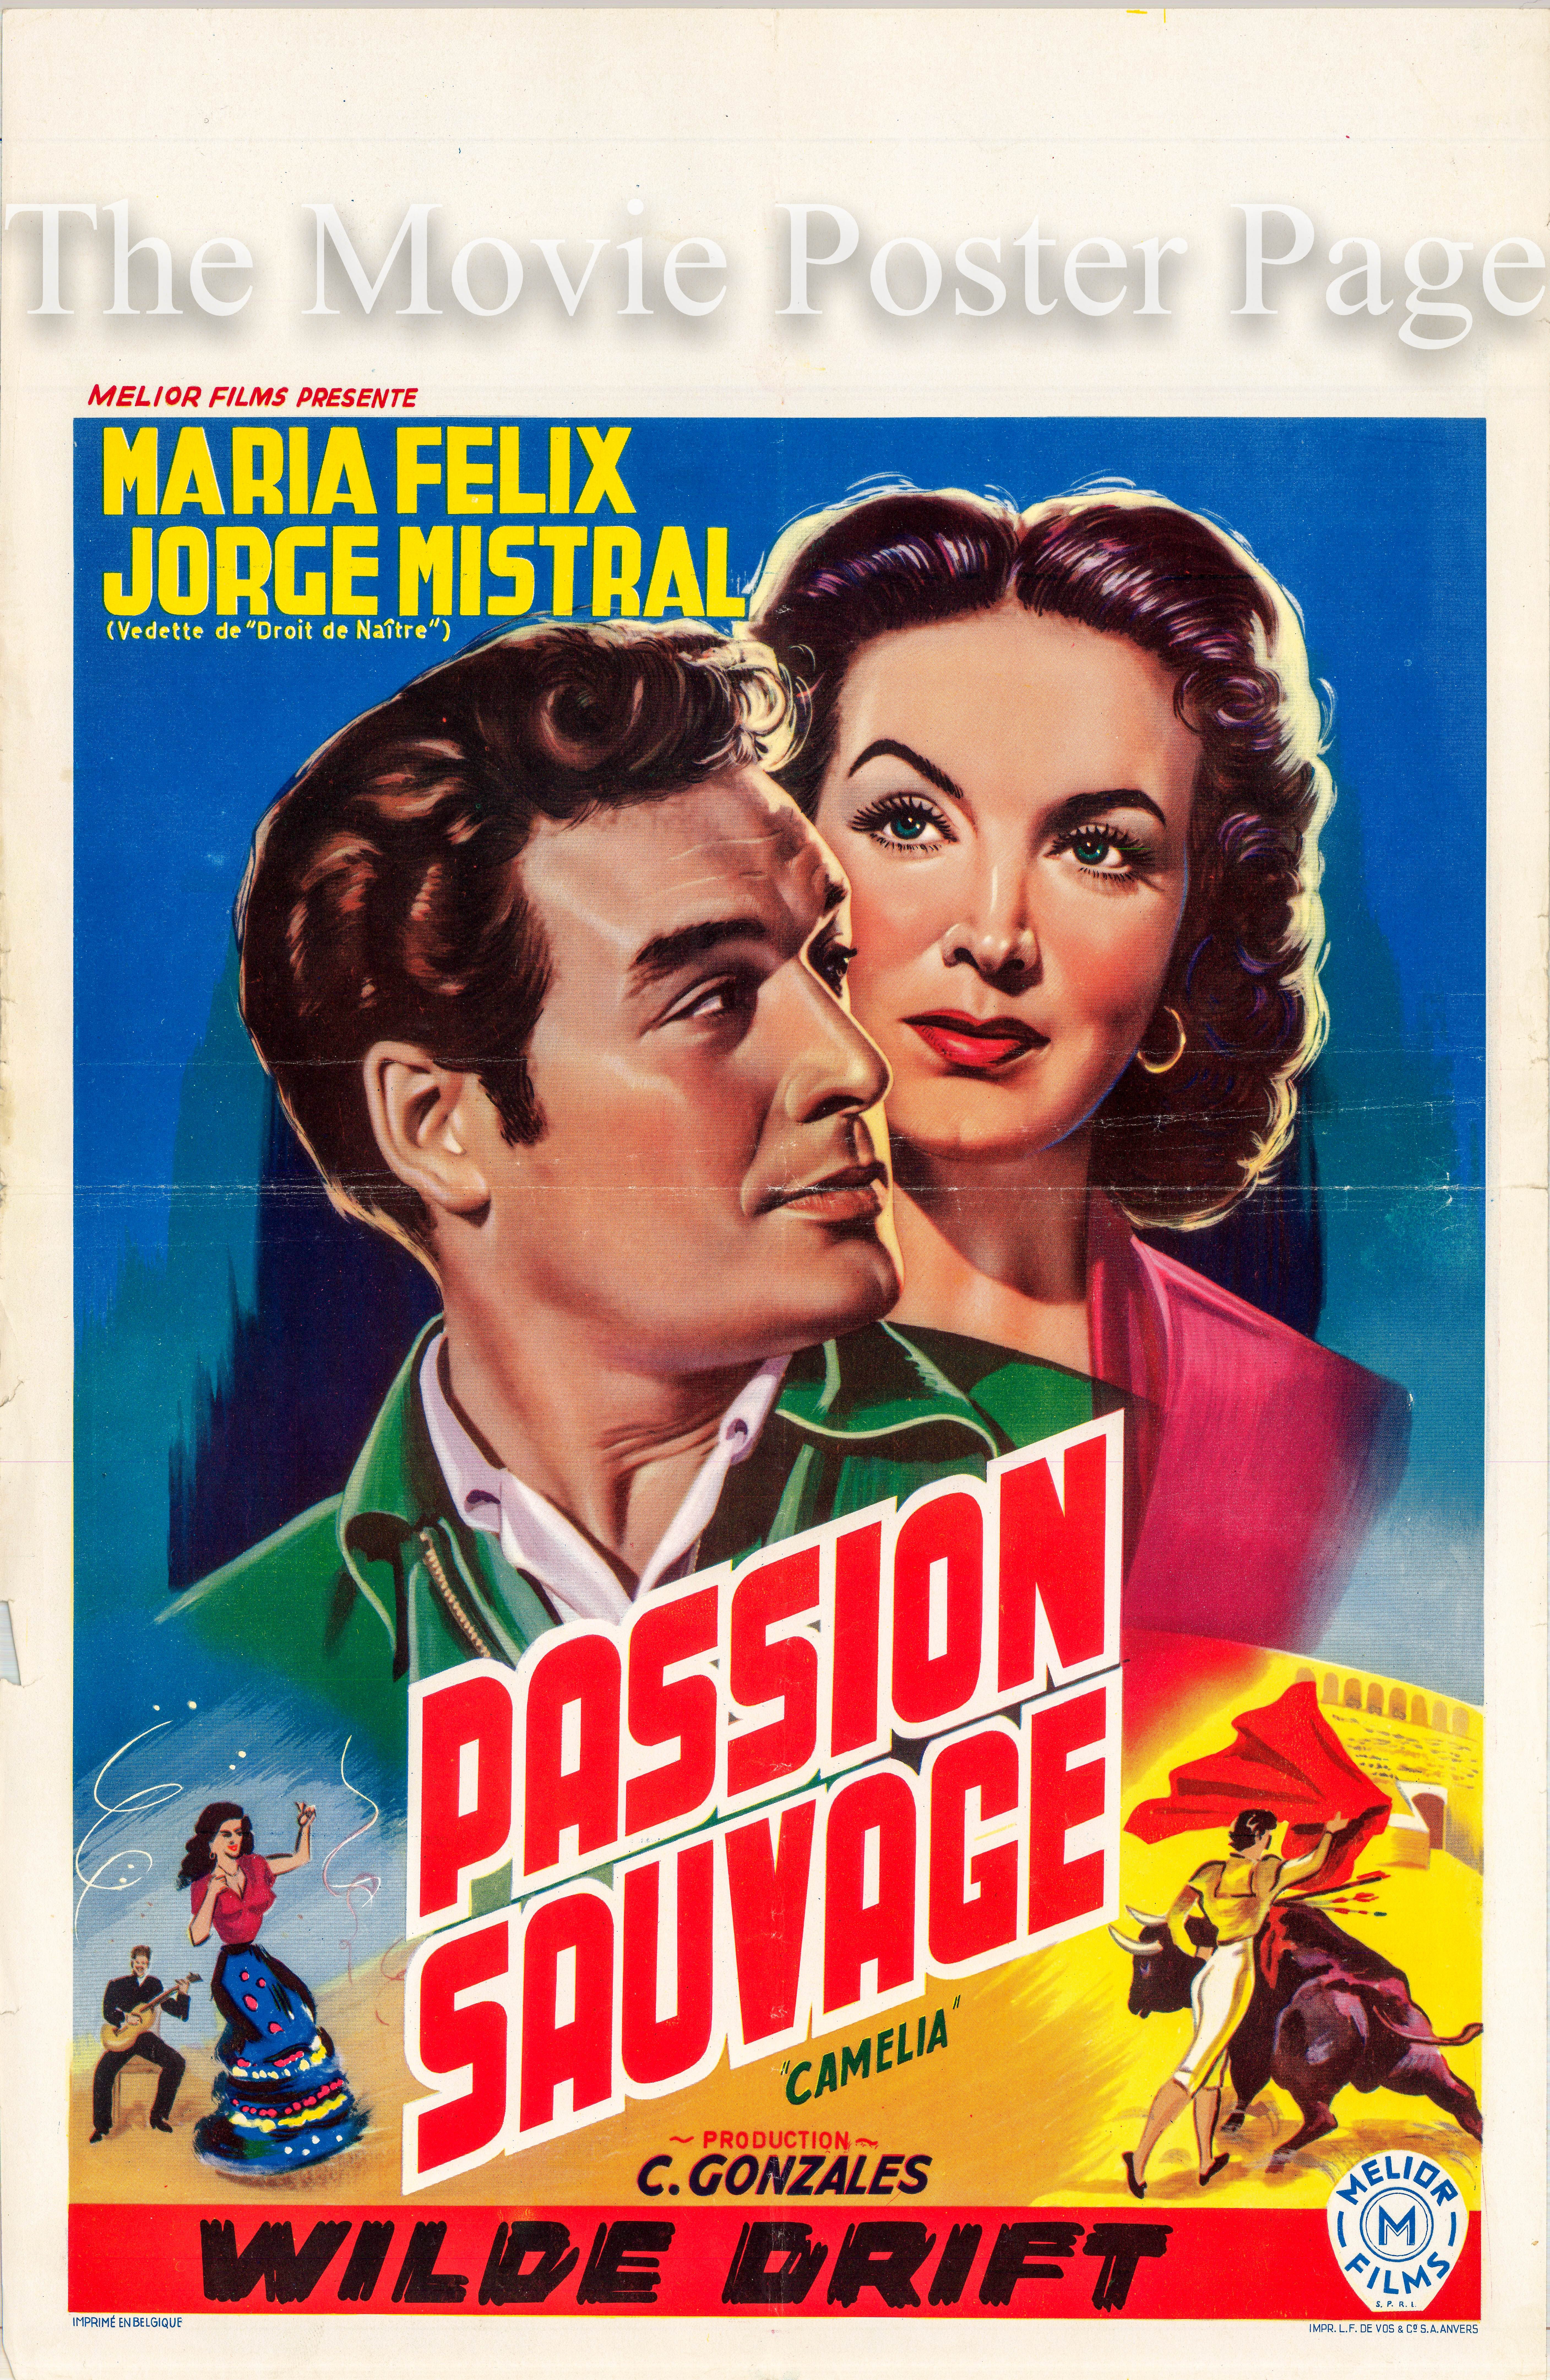 Pictured is a Belgian poster for the 1954 Roberto Gavaldón film Camelia starring María Félix as Camelia Peral.